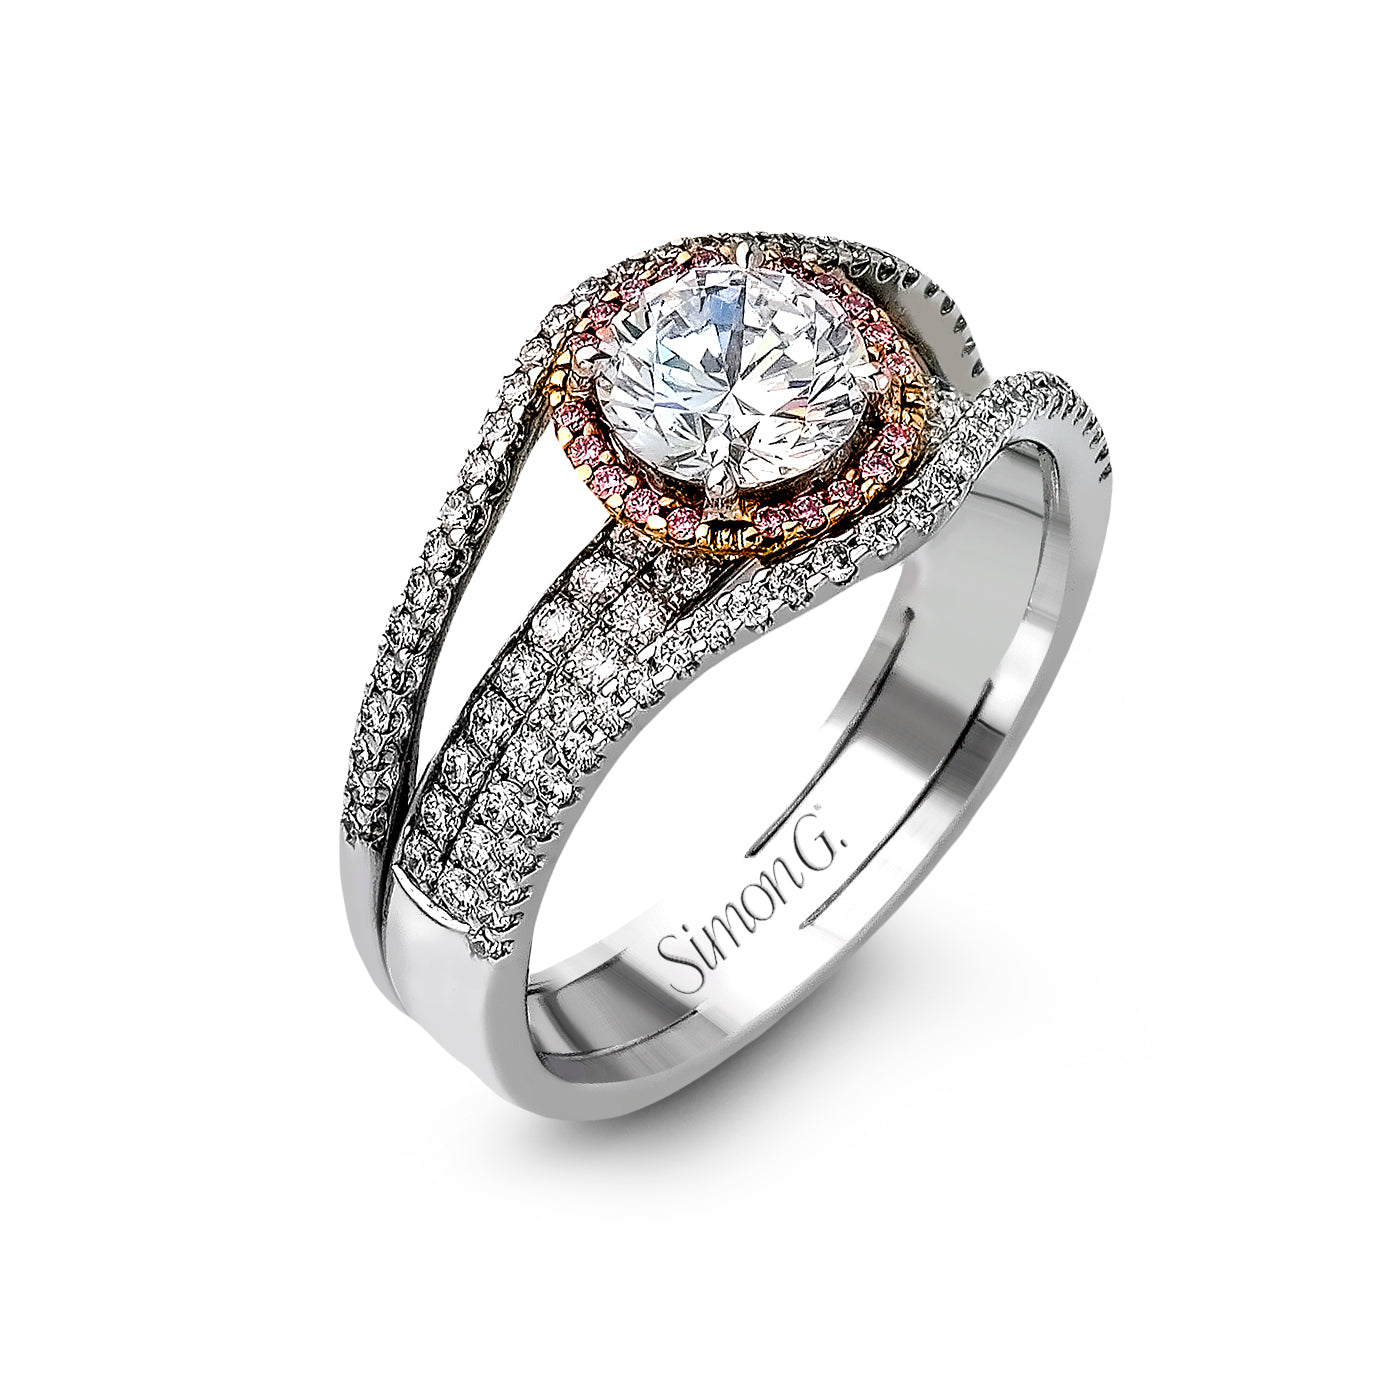 Simon G 18K White Gold Diamond Halo Engagement Setting